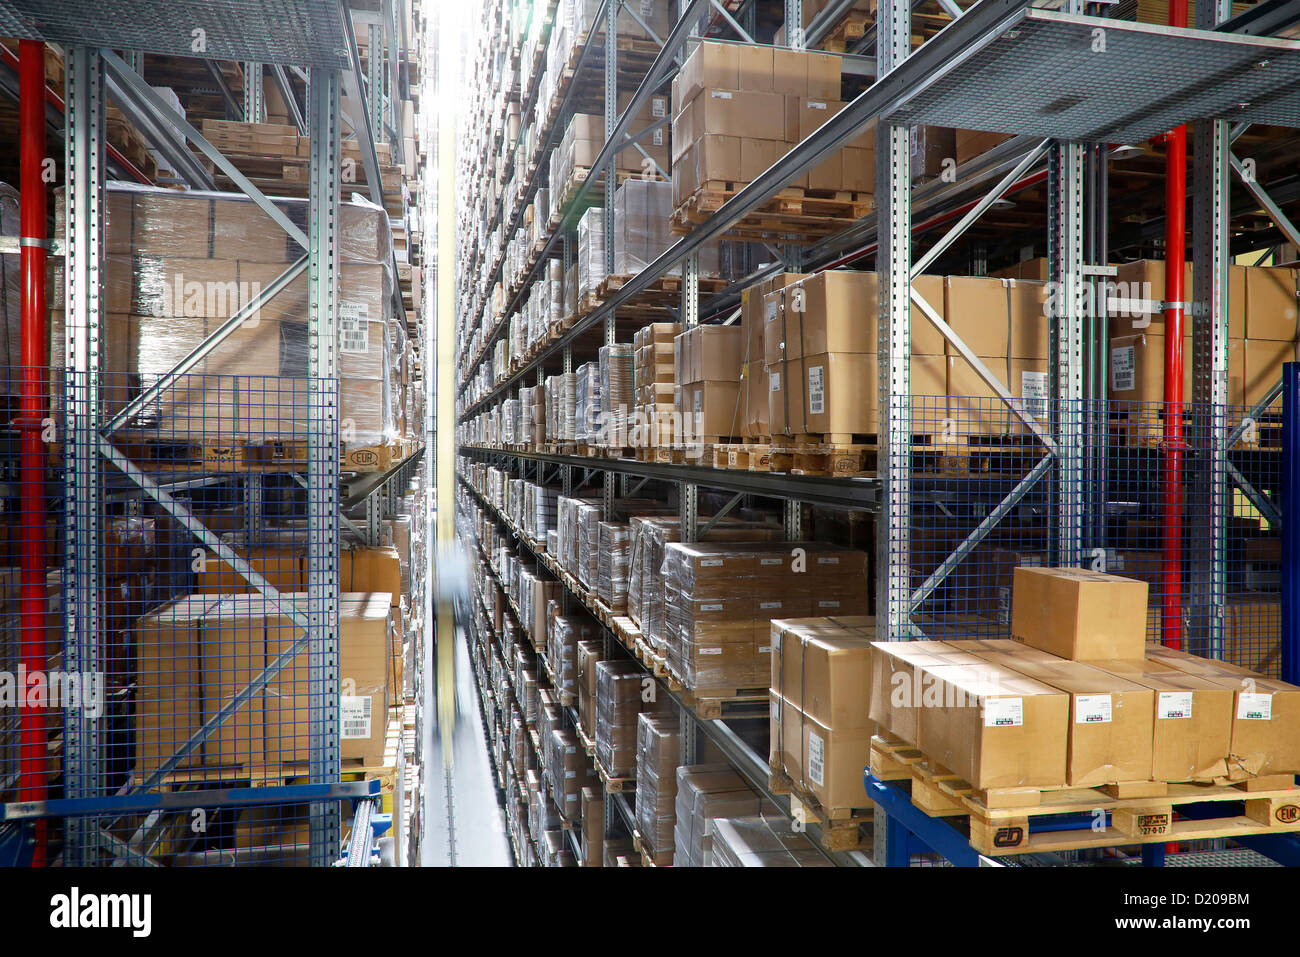 dortmund germany ikea distribution center dortmund ellinghausen stockfoto lizenzfreies bild. Black Bedroom Furniture Sets. Home Design Ideas